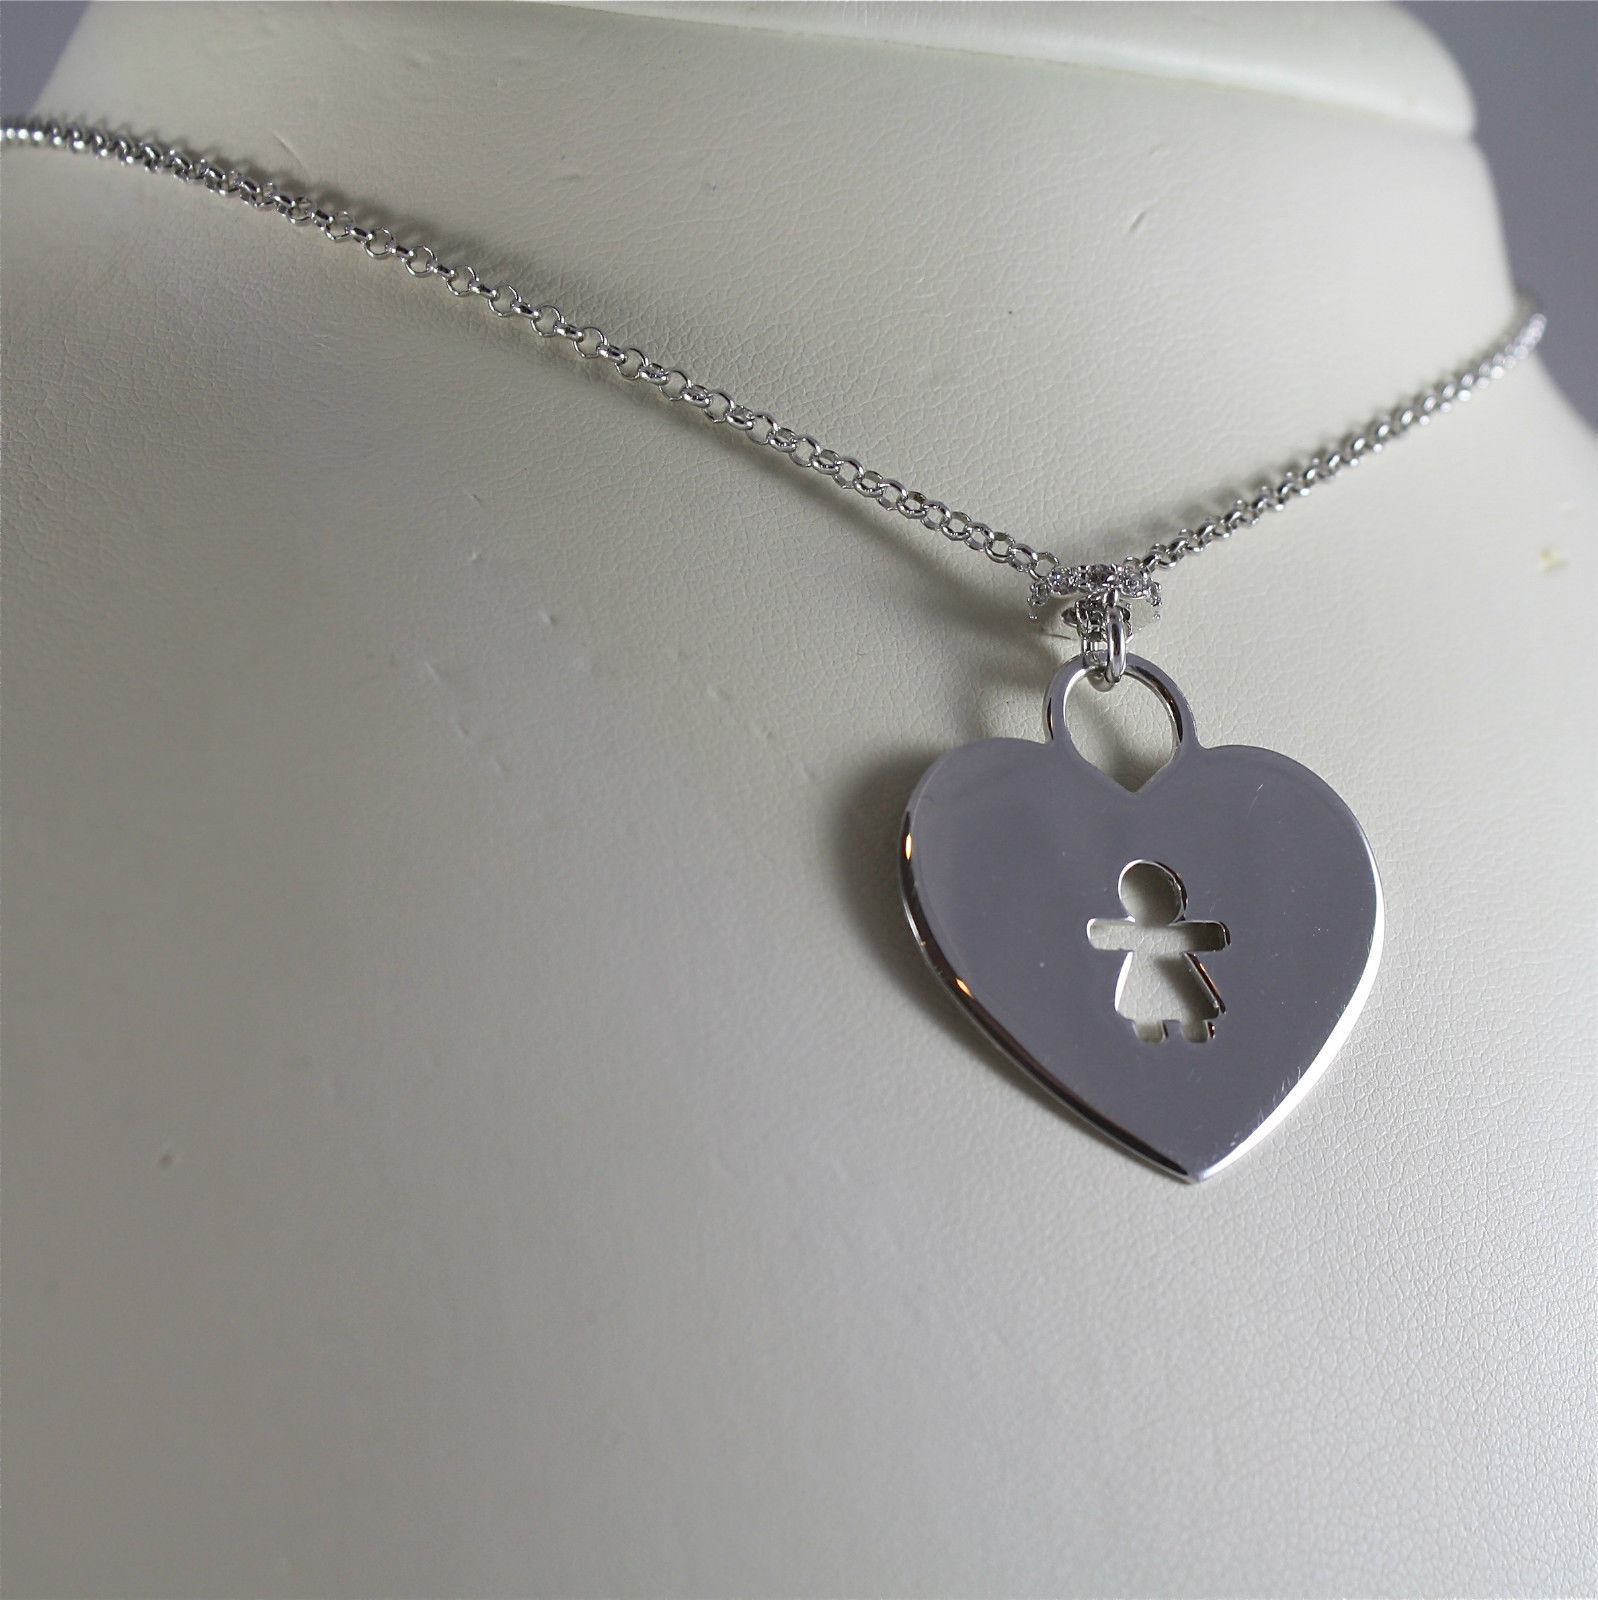 925 SILVER, AQUAFORTE NECKLACE, RHODIUM SILVER, HEART & BABY CHARM, SUPERLIGHT​.